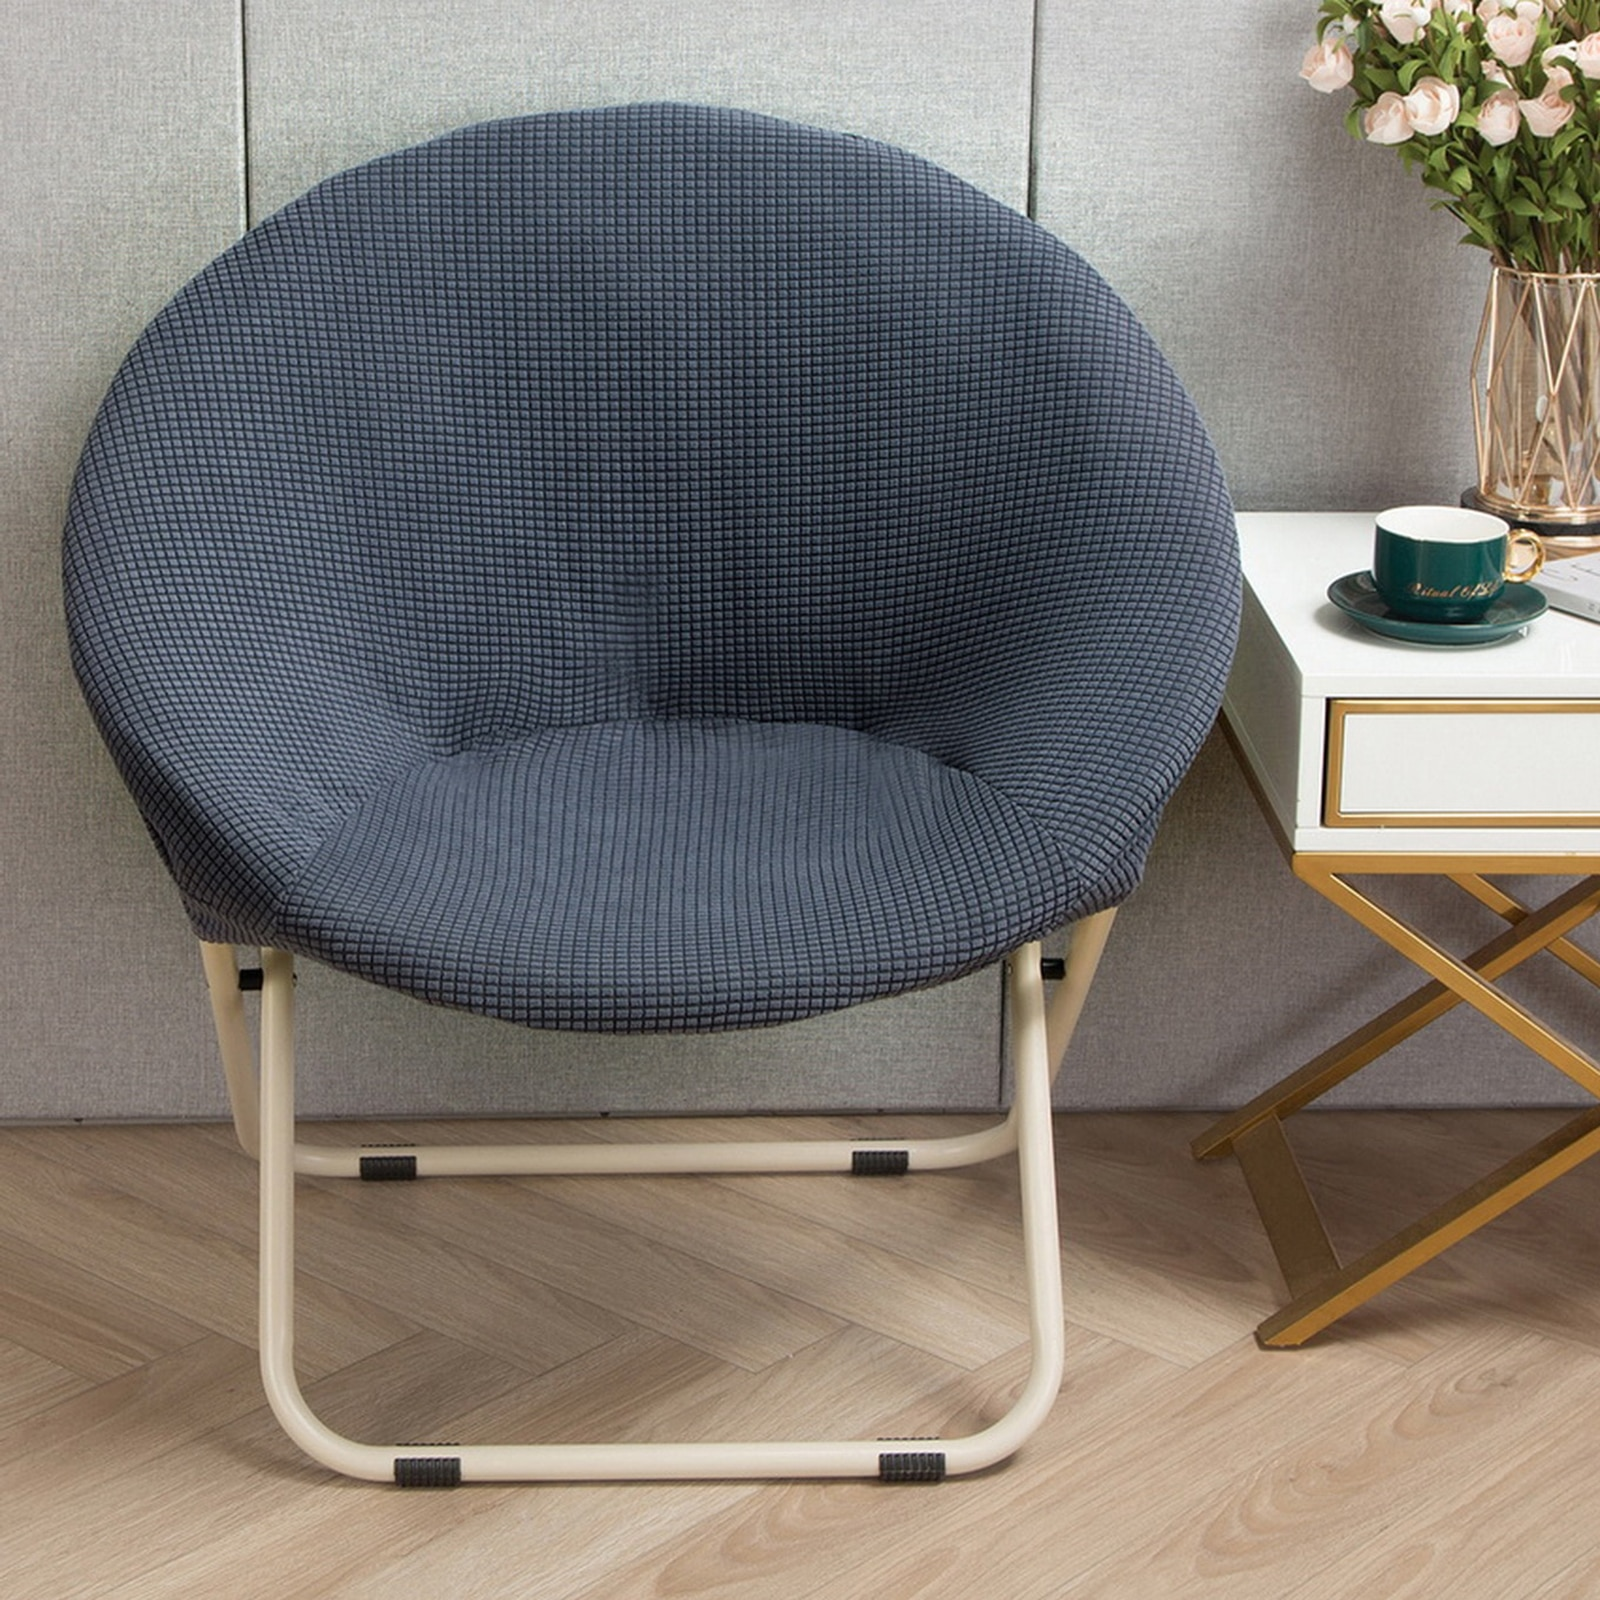 Super Soft Jacquard Saucer Chair Slipcover Stretchable Removable Polyester Moon Chair Cover Home Hotel Washable